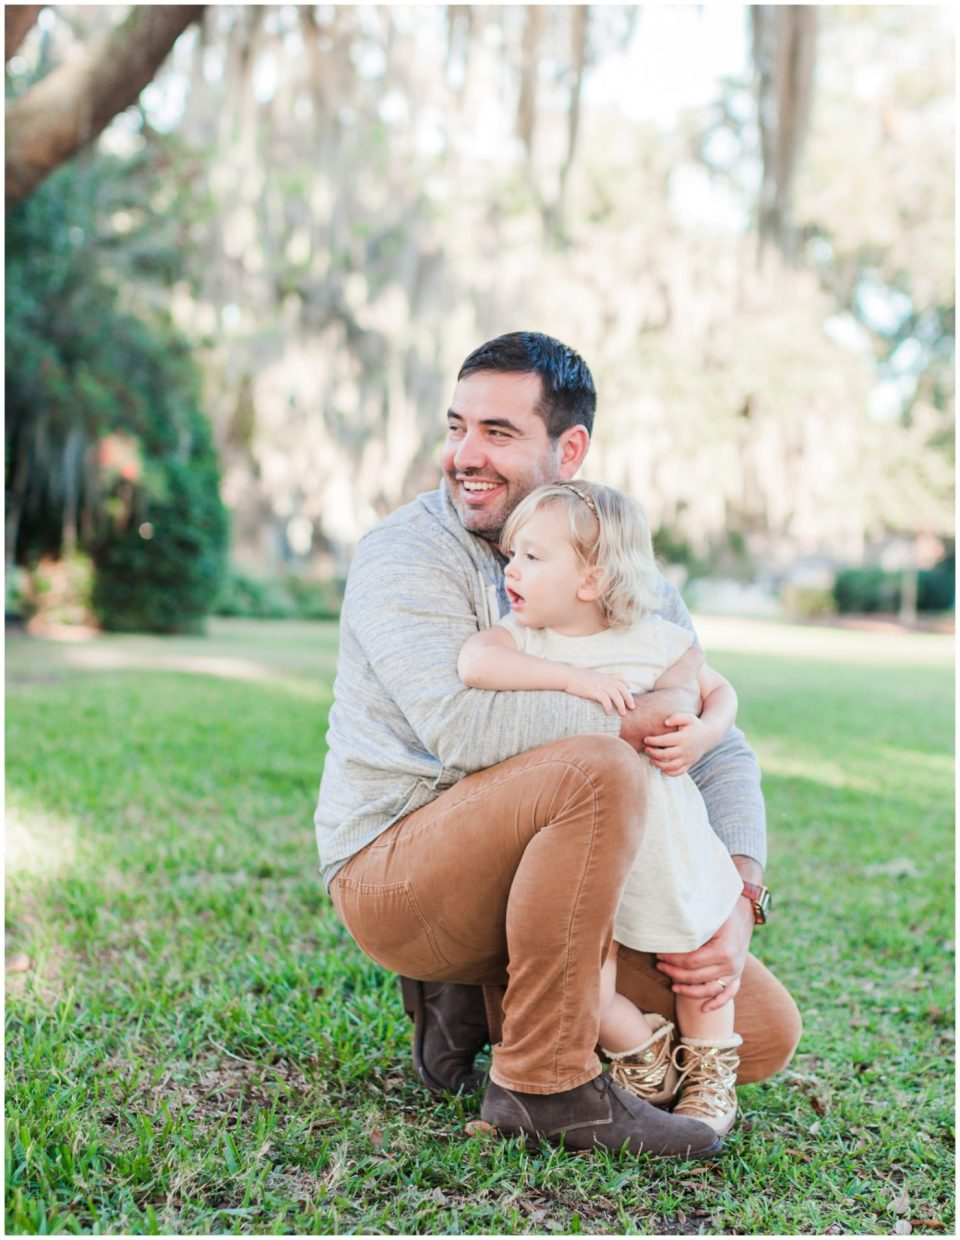 Belman Family Session Wachesaw Plantation by Kristy Roderick